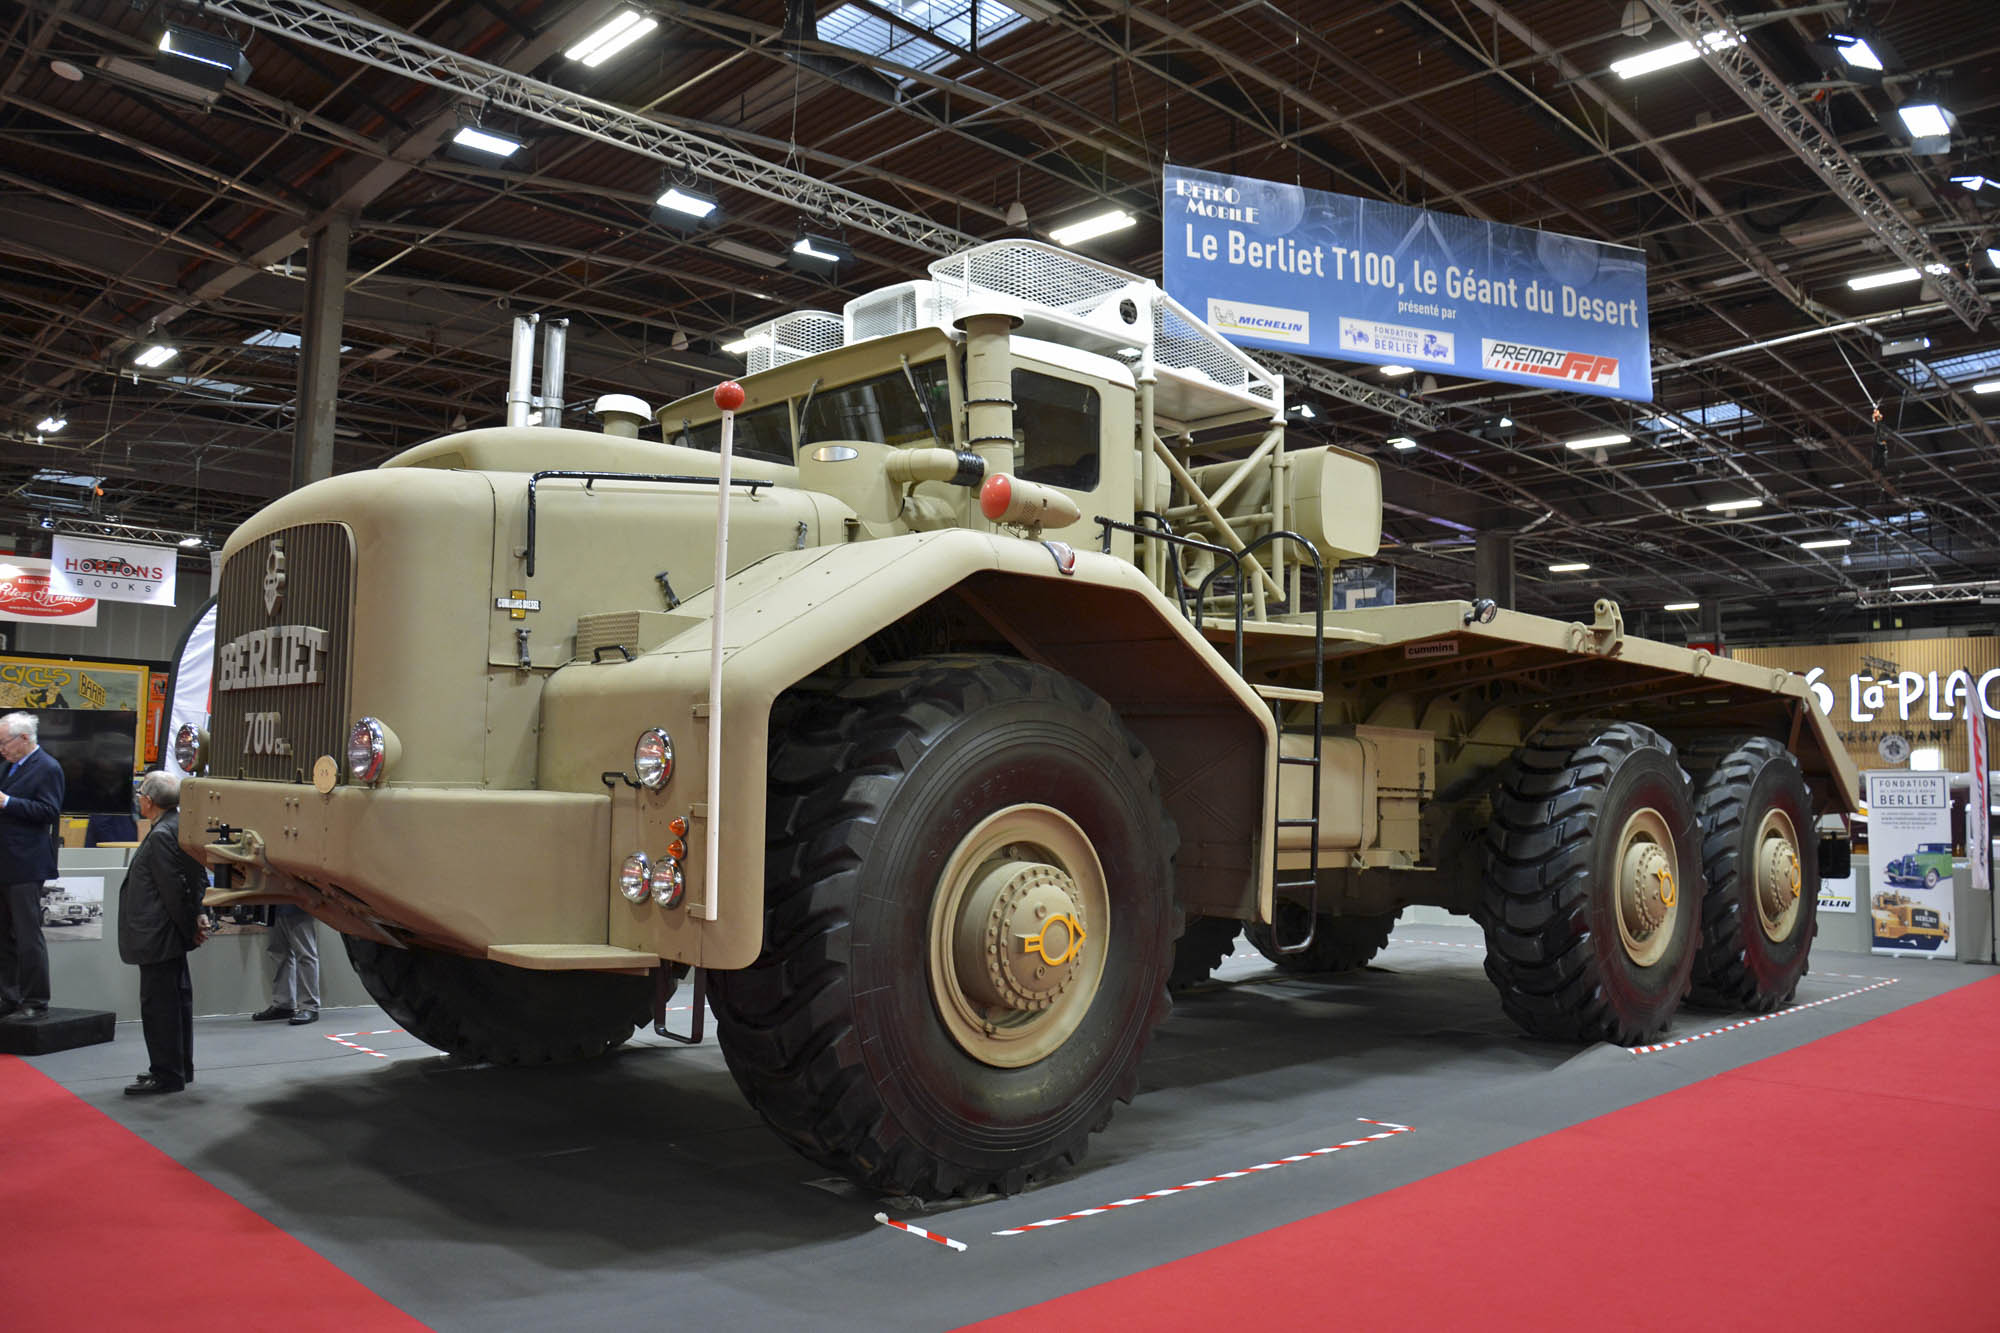 The rare, giant Berliet T100 truck will blow your mind thumbnail